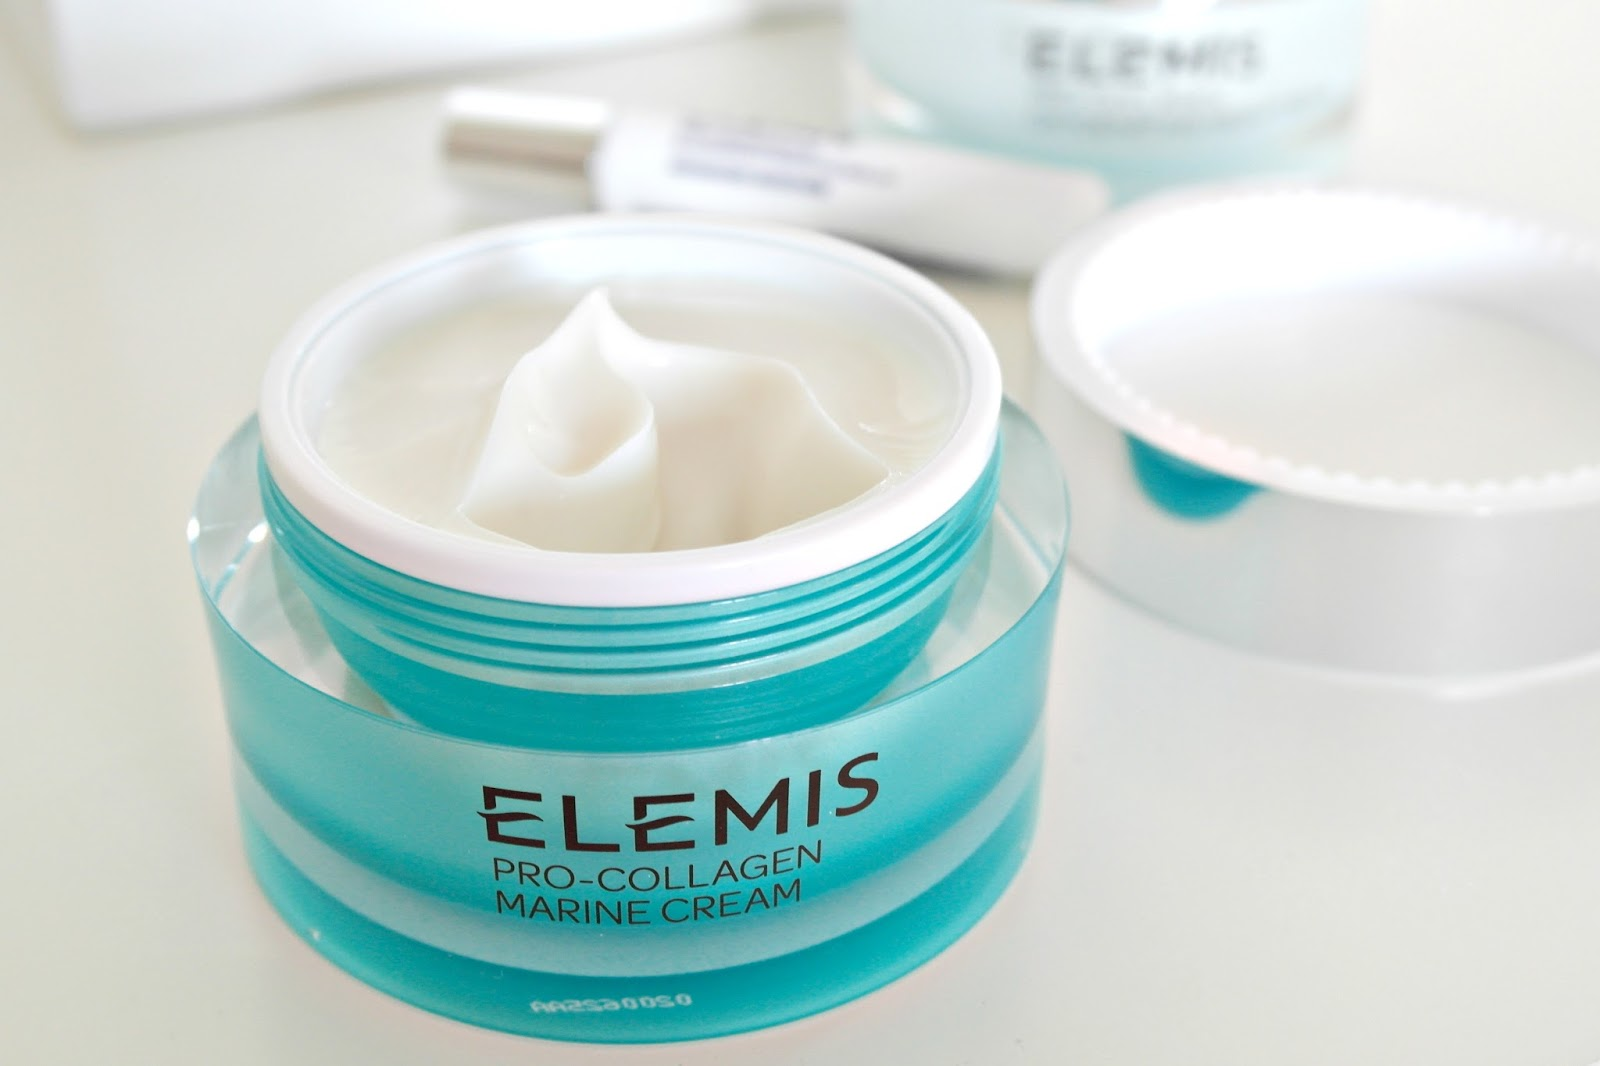 Elemis Pro-Collagen Marine Cream 100ml Review, Beauty Blog